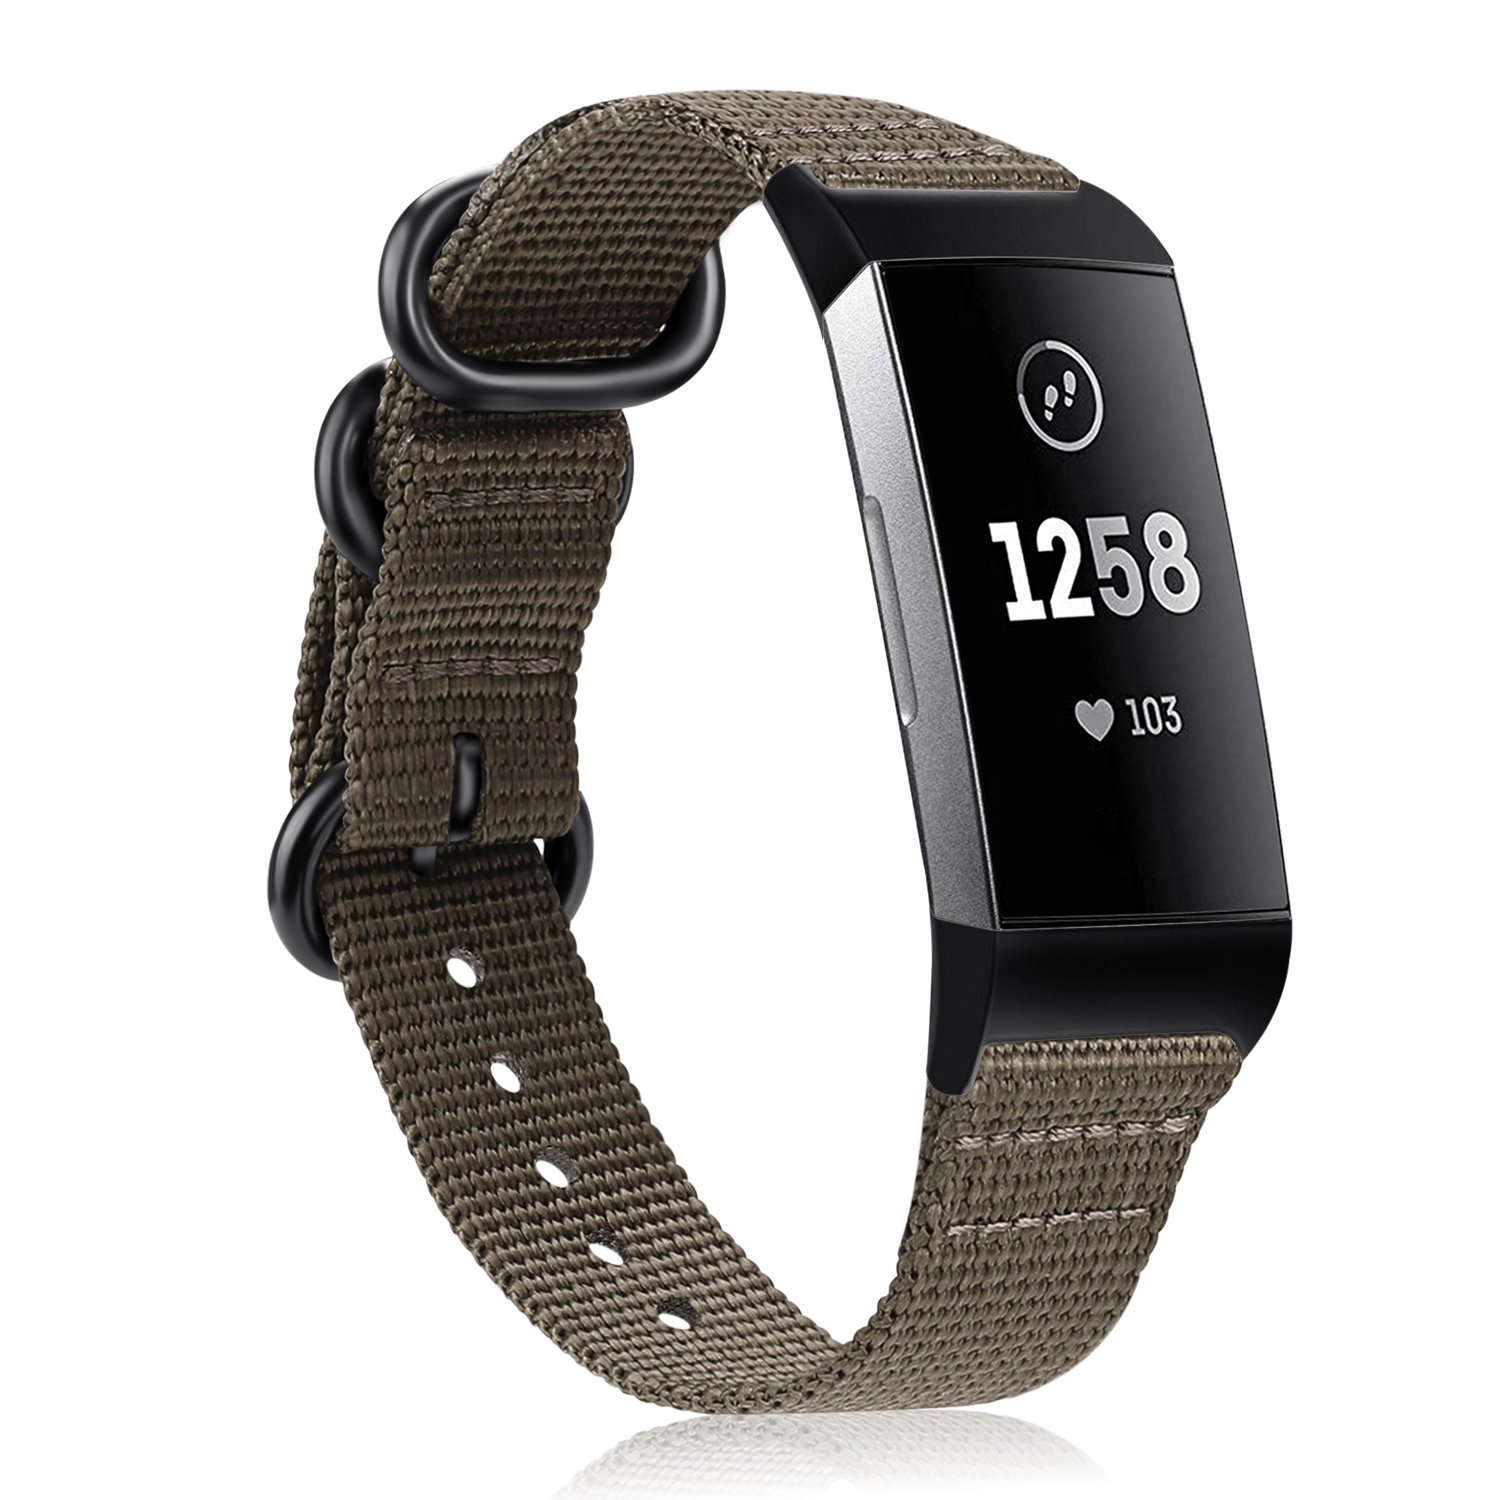 Fintie Bands for Fitbit Charge 3 SE Fitness Activity Tracker, Soft Woven Nylon Sports Band Replacement Strap Desert Tan